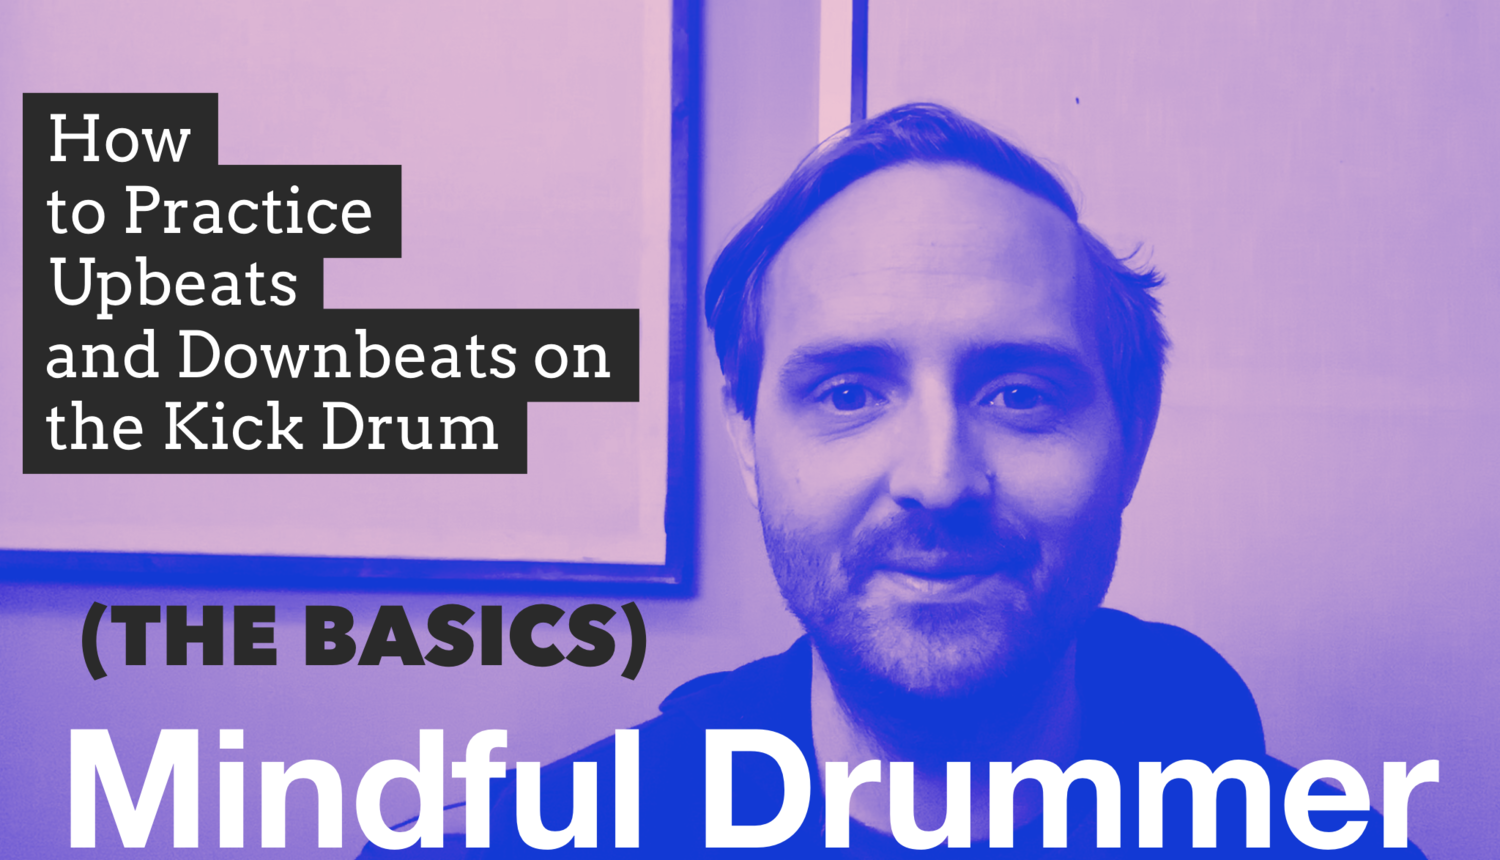 Learn how to practice the kick drum playing upbeats and